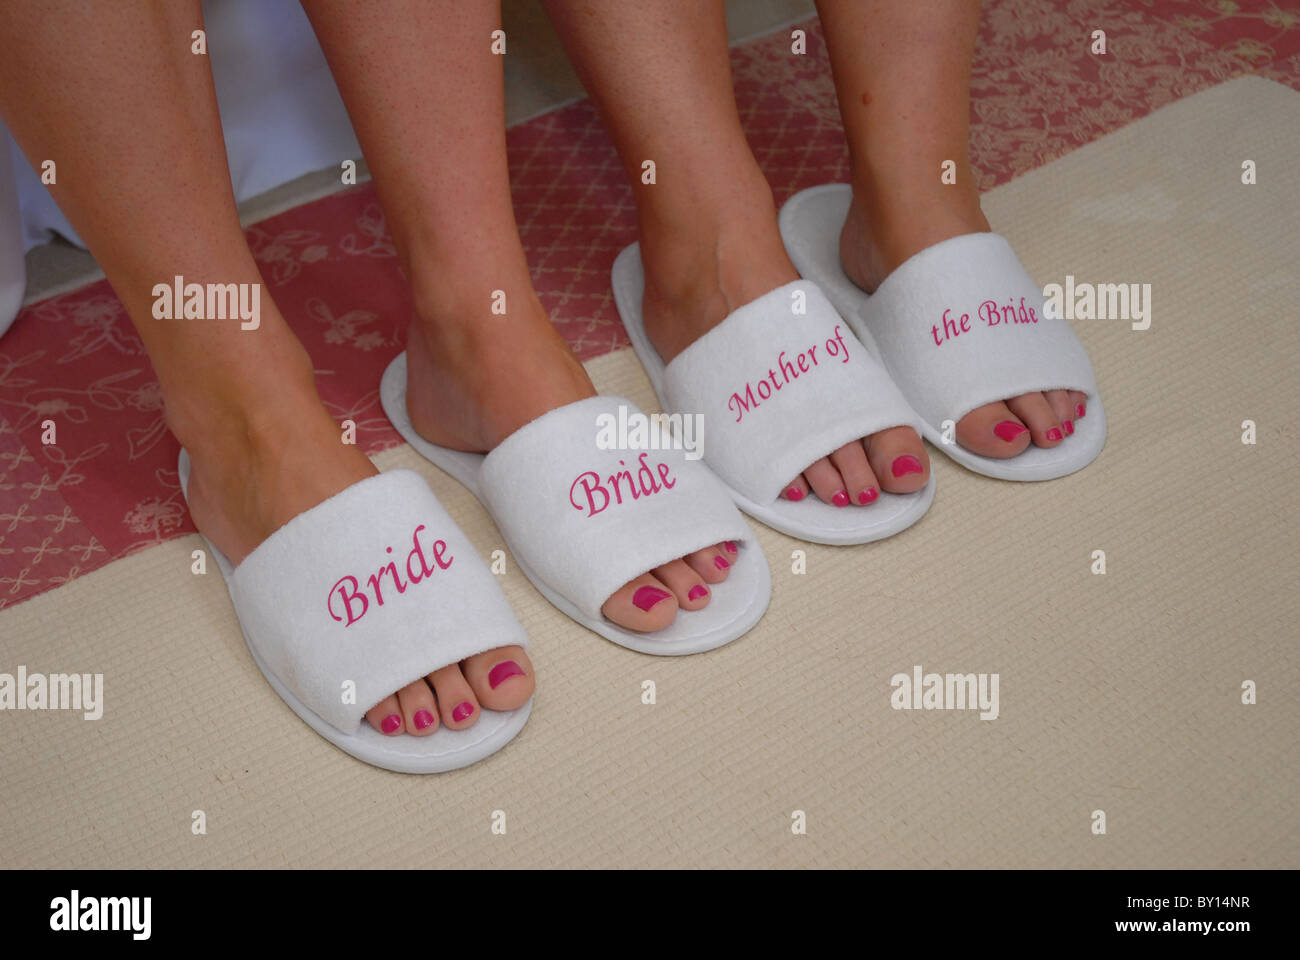 f477ff12df37 Bride and mother of the Bride wearing labeled slippers on the wedding  morning.